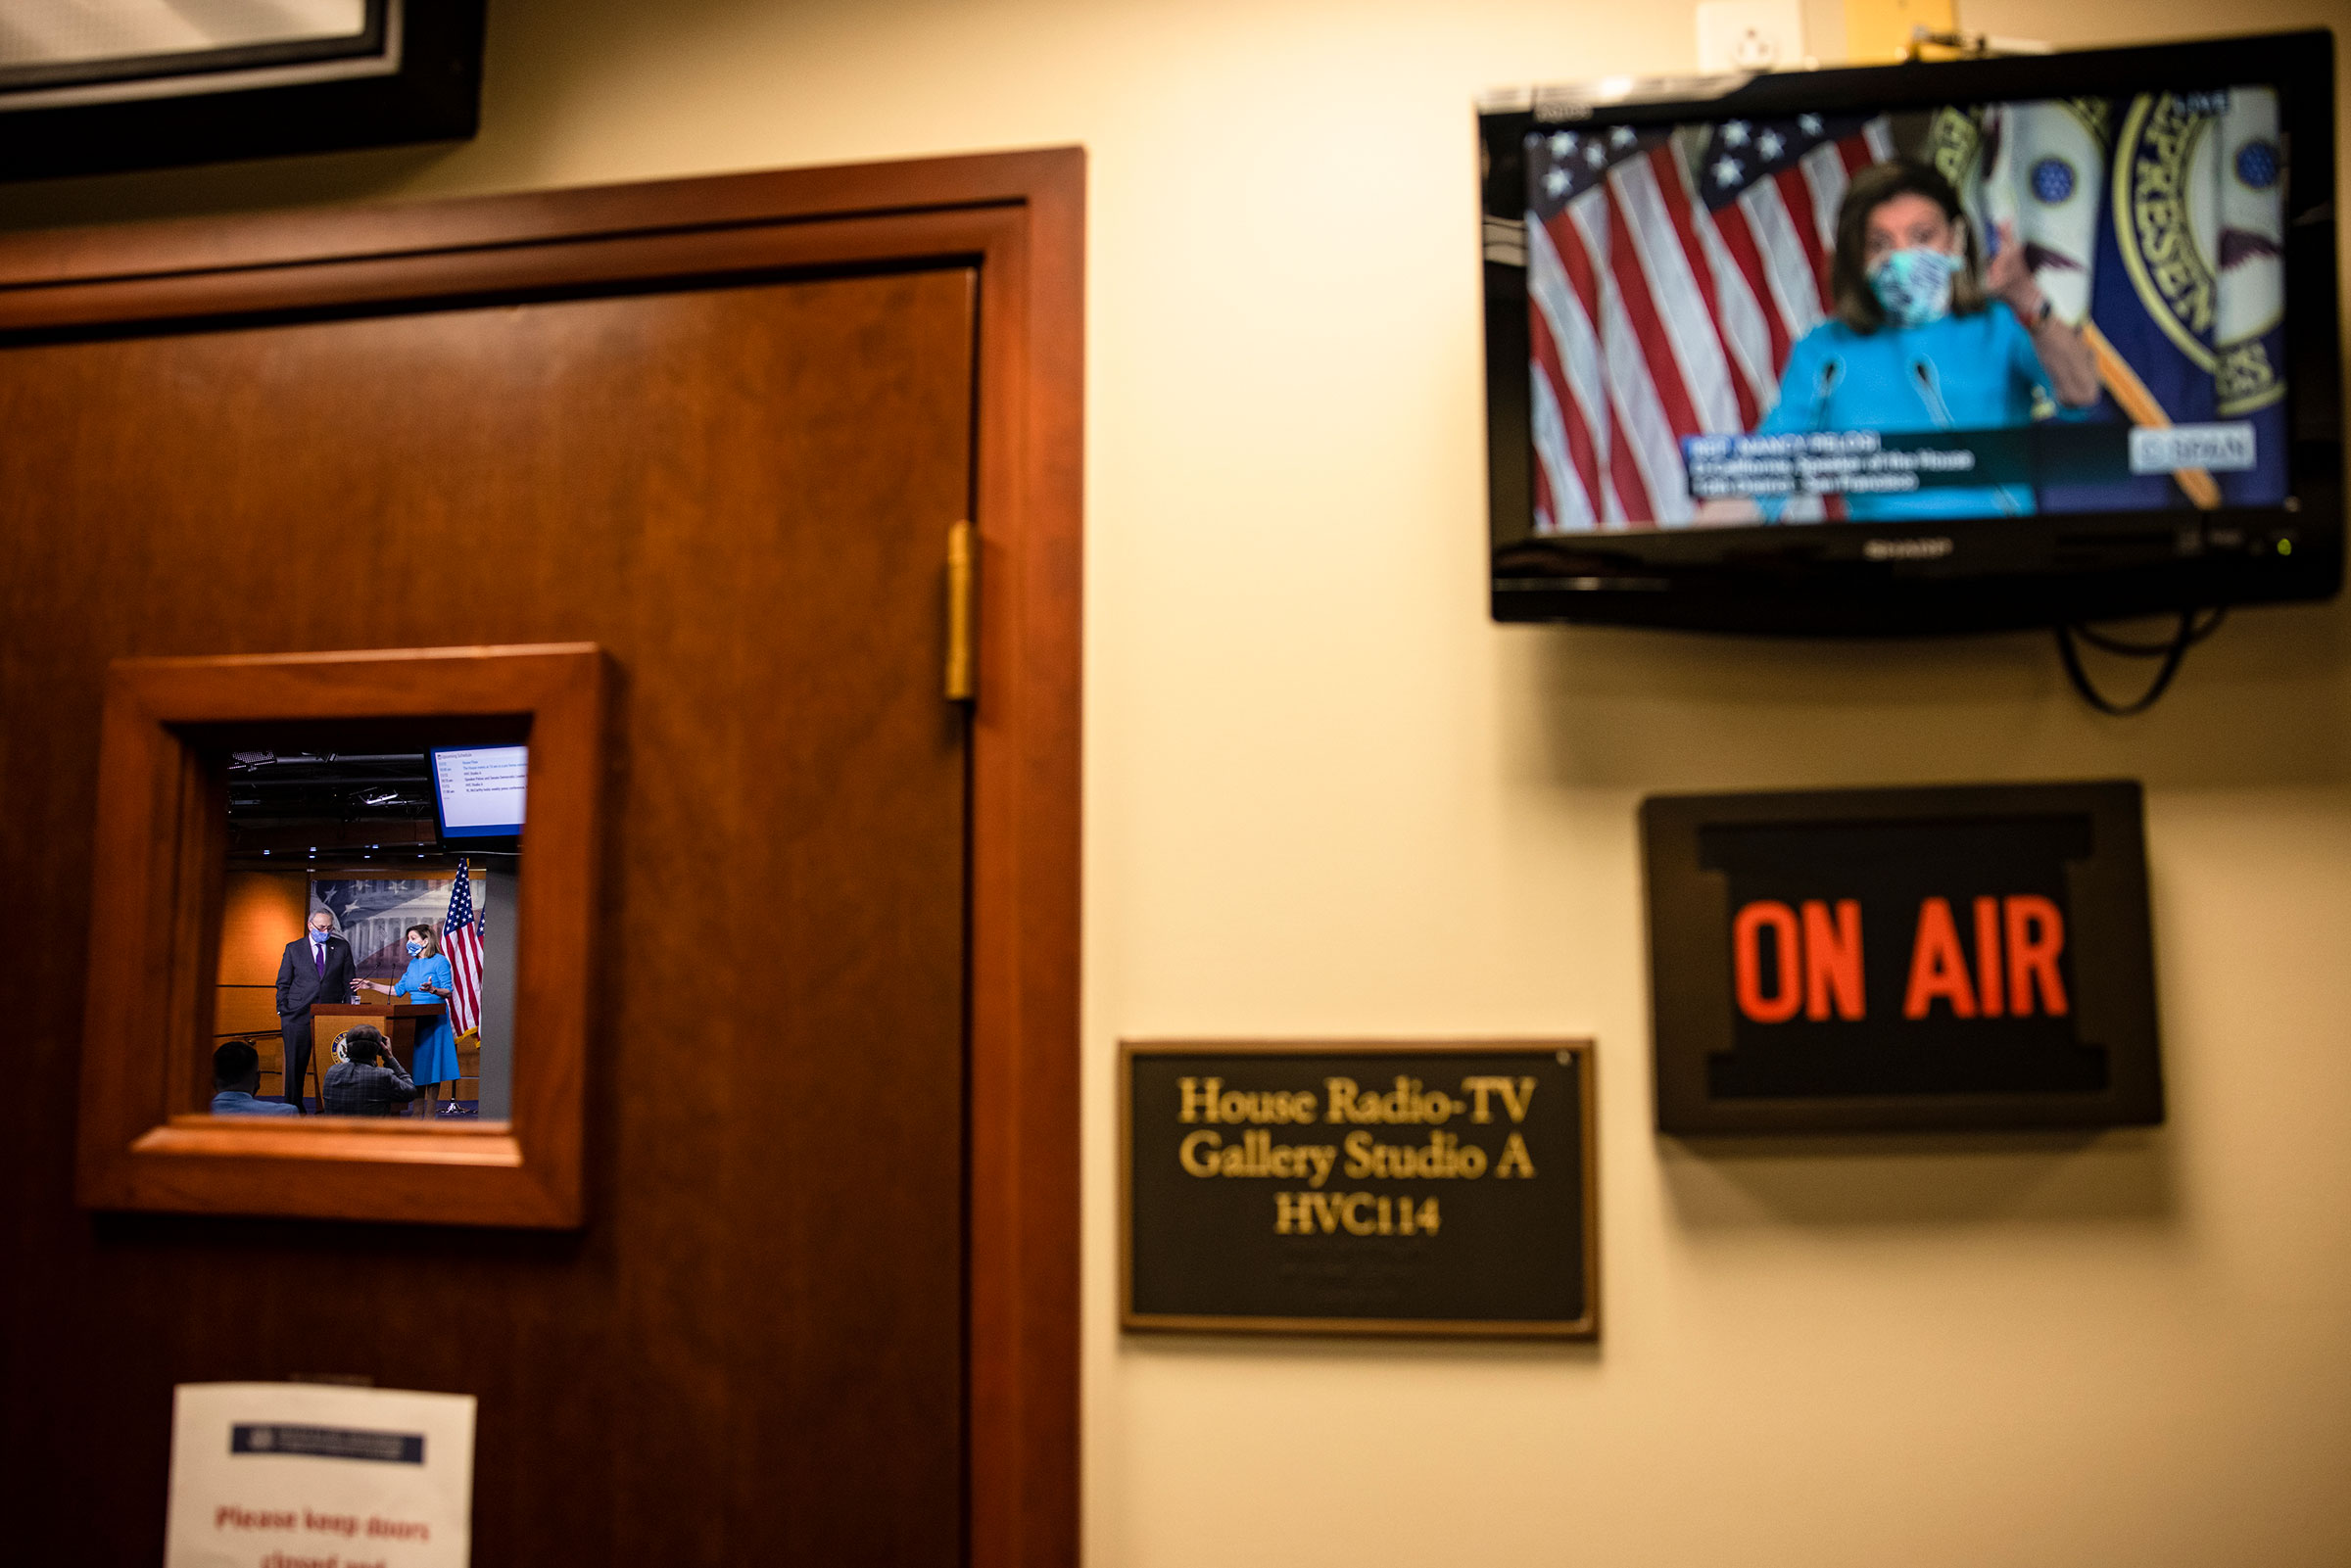 The broadcast of the press conference with Speaker of the House Nancy Pelosi and Senate Minority Leader Chuck Schumer is seen on a television outside of where it is being held at the U.S. Capitol on Nov. 12, 2020.